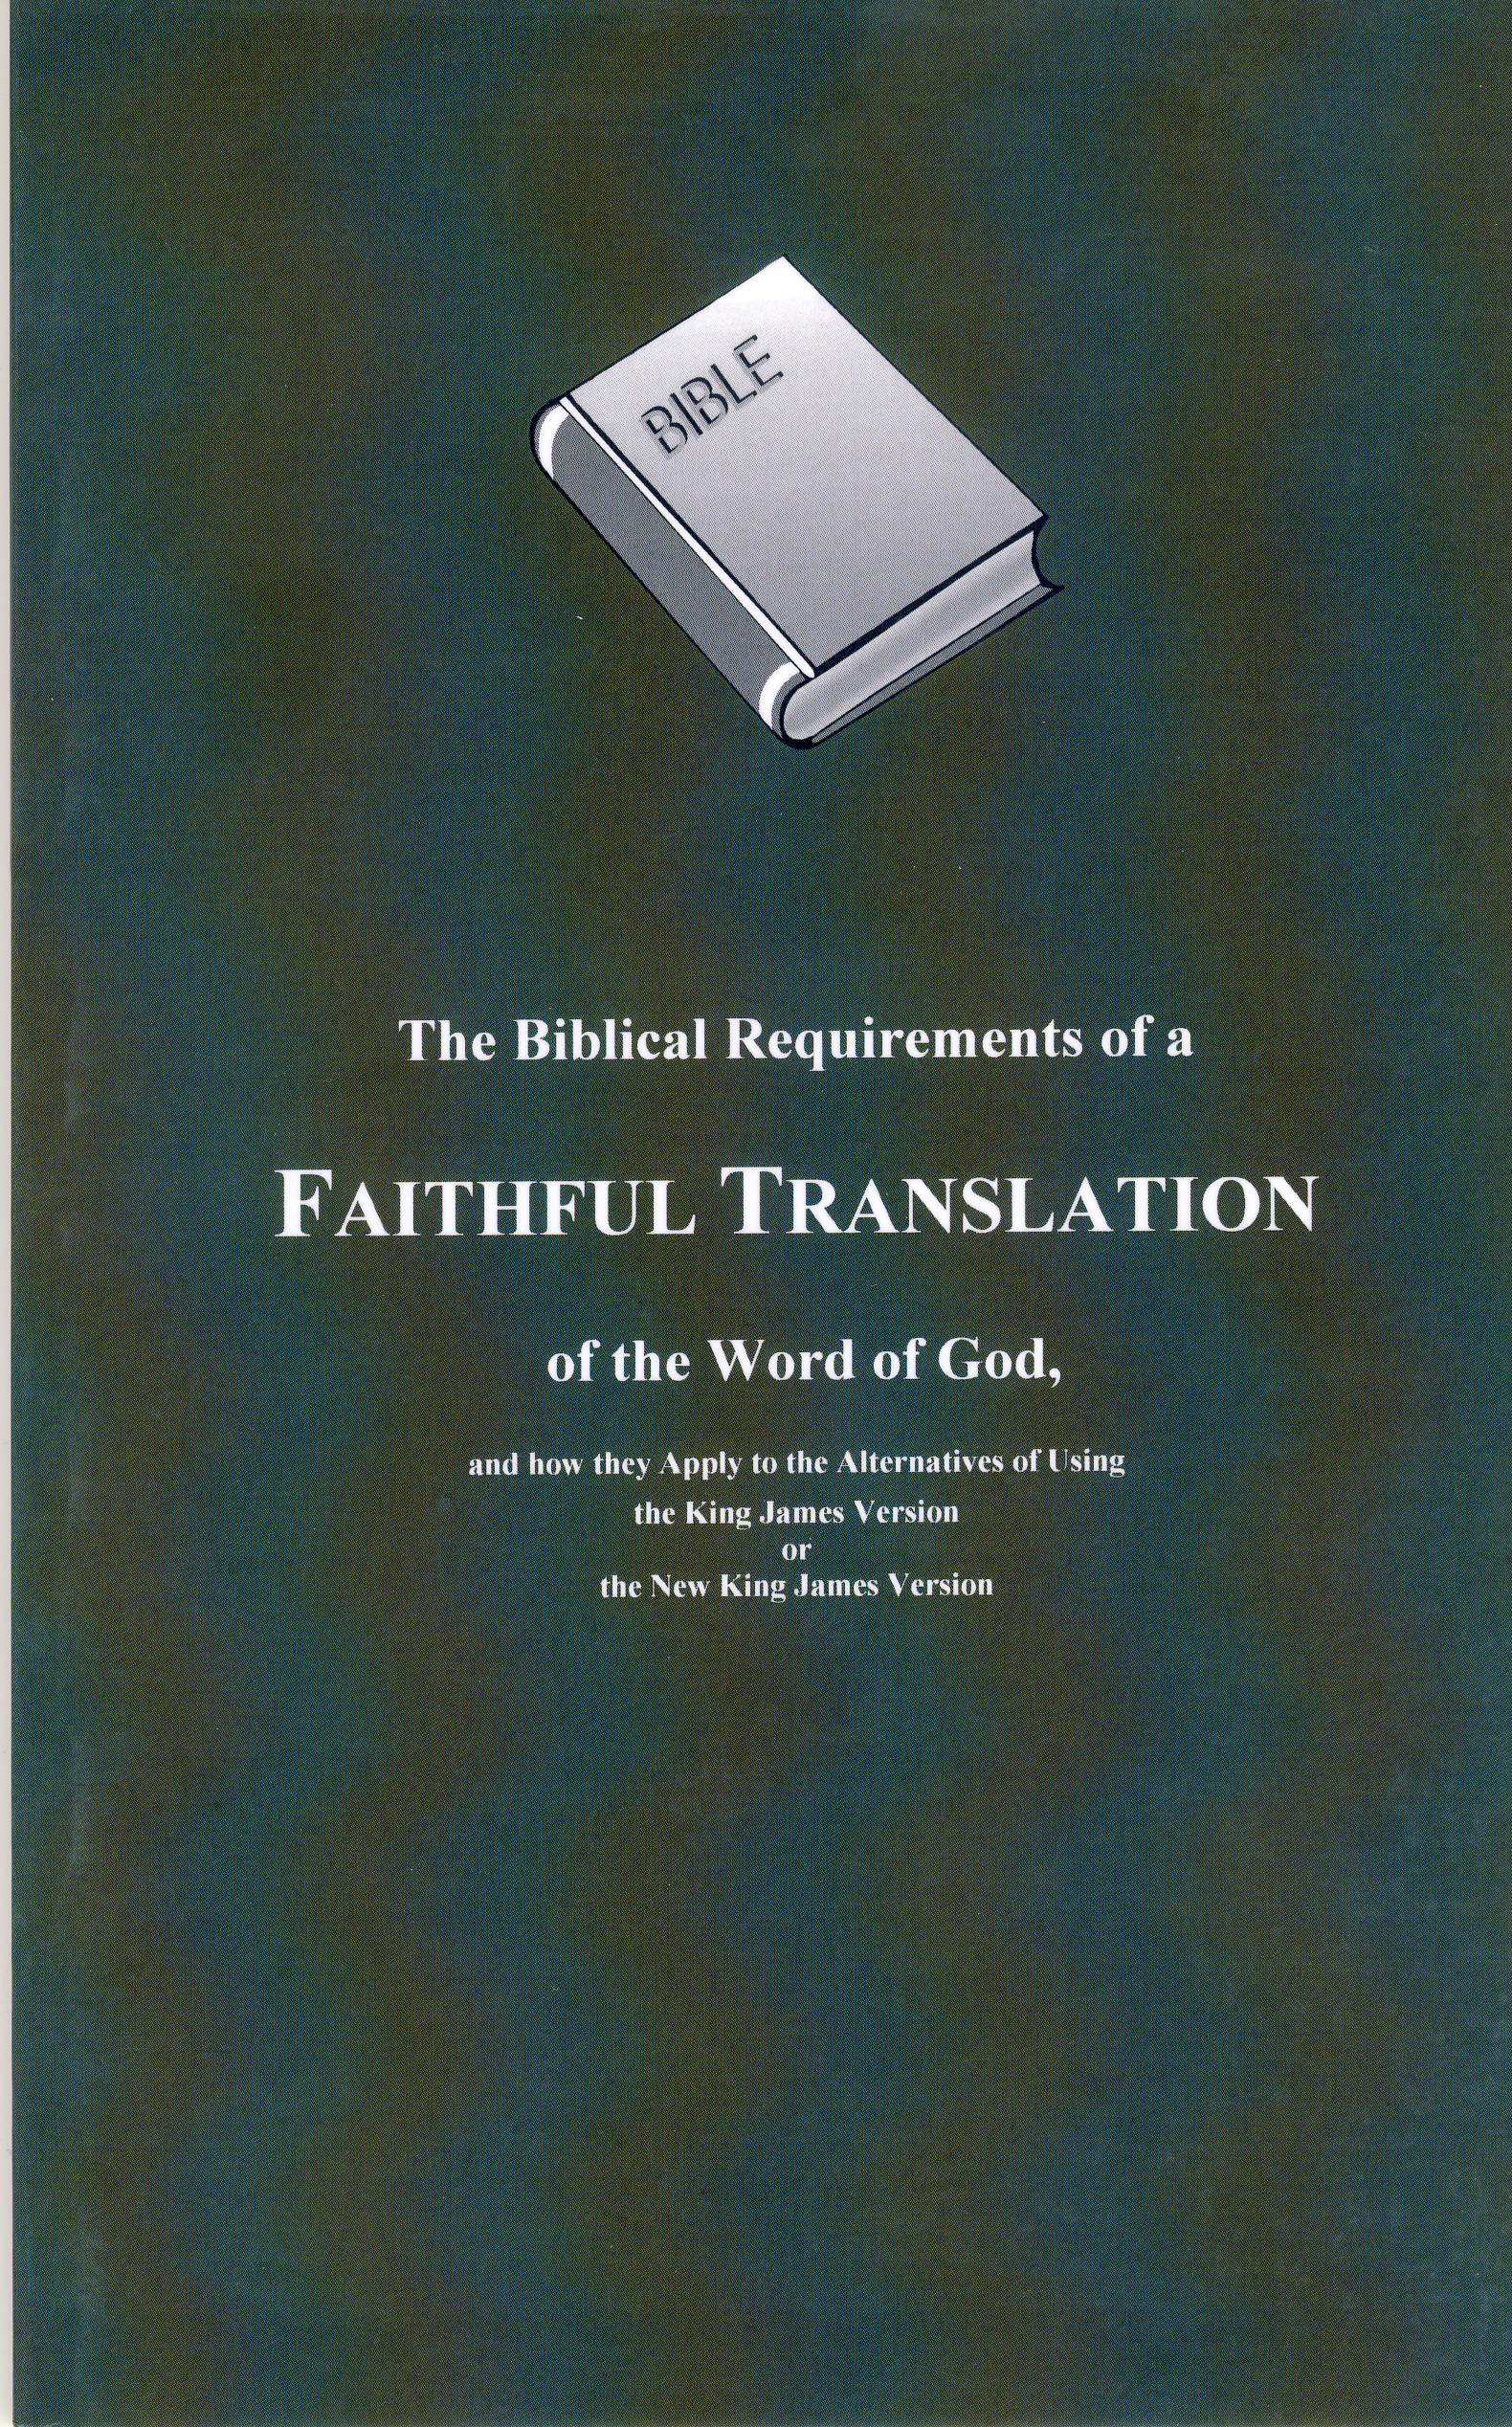 Biblical Requirements of a Faithful Translation of Word of God